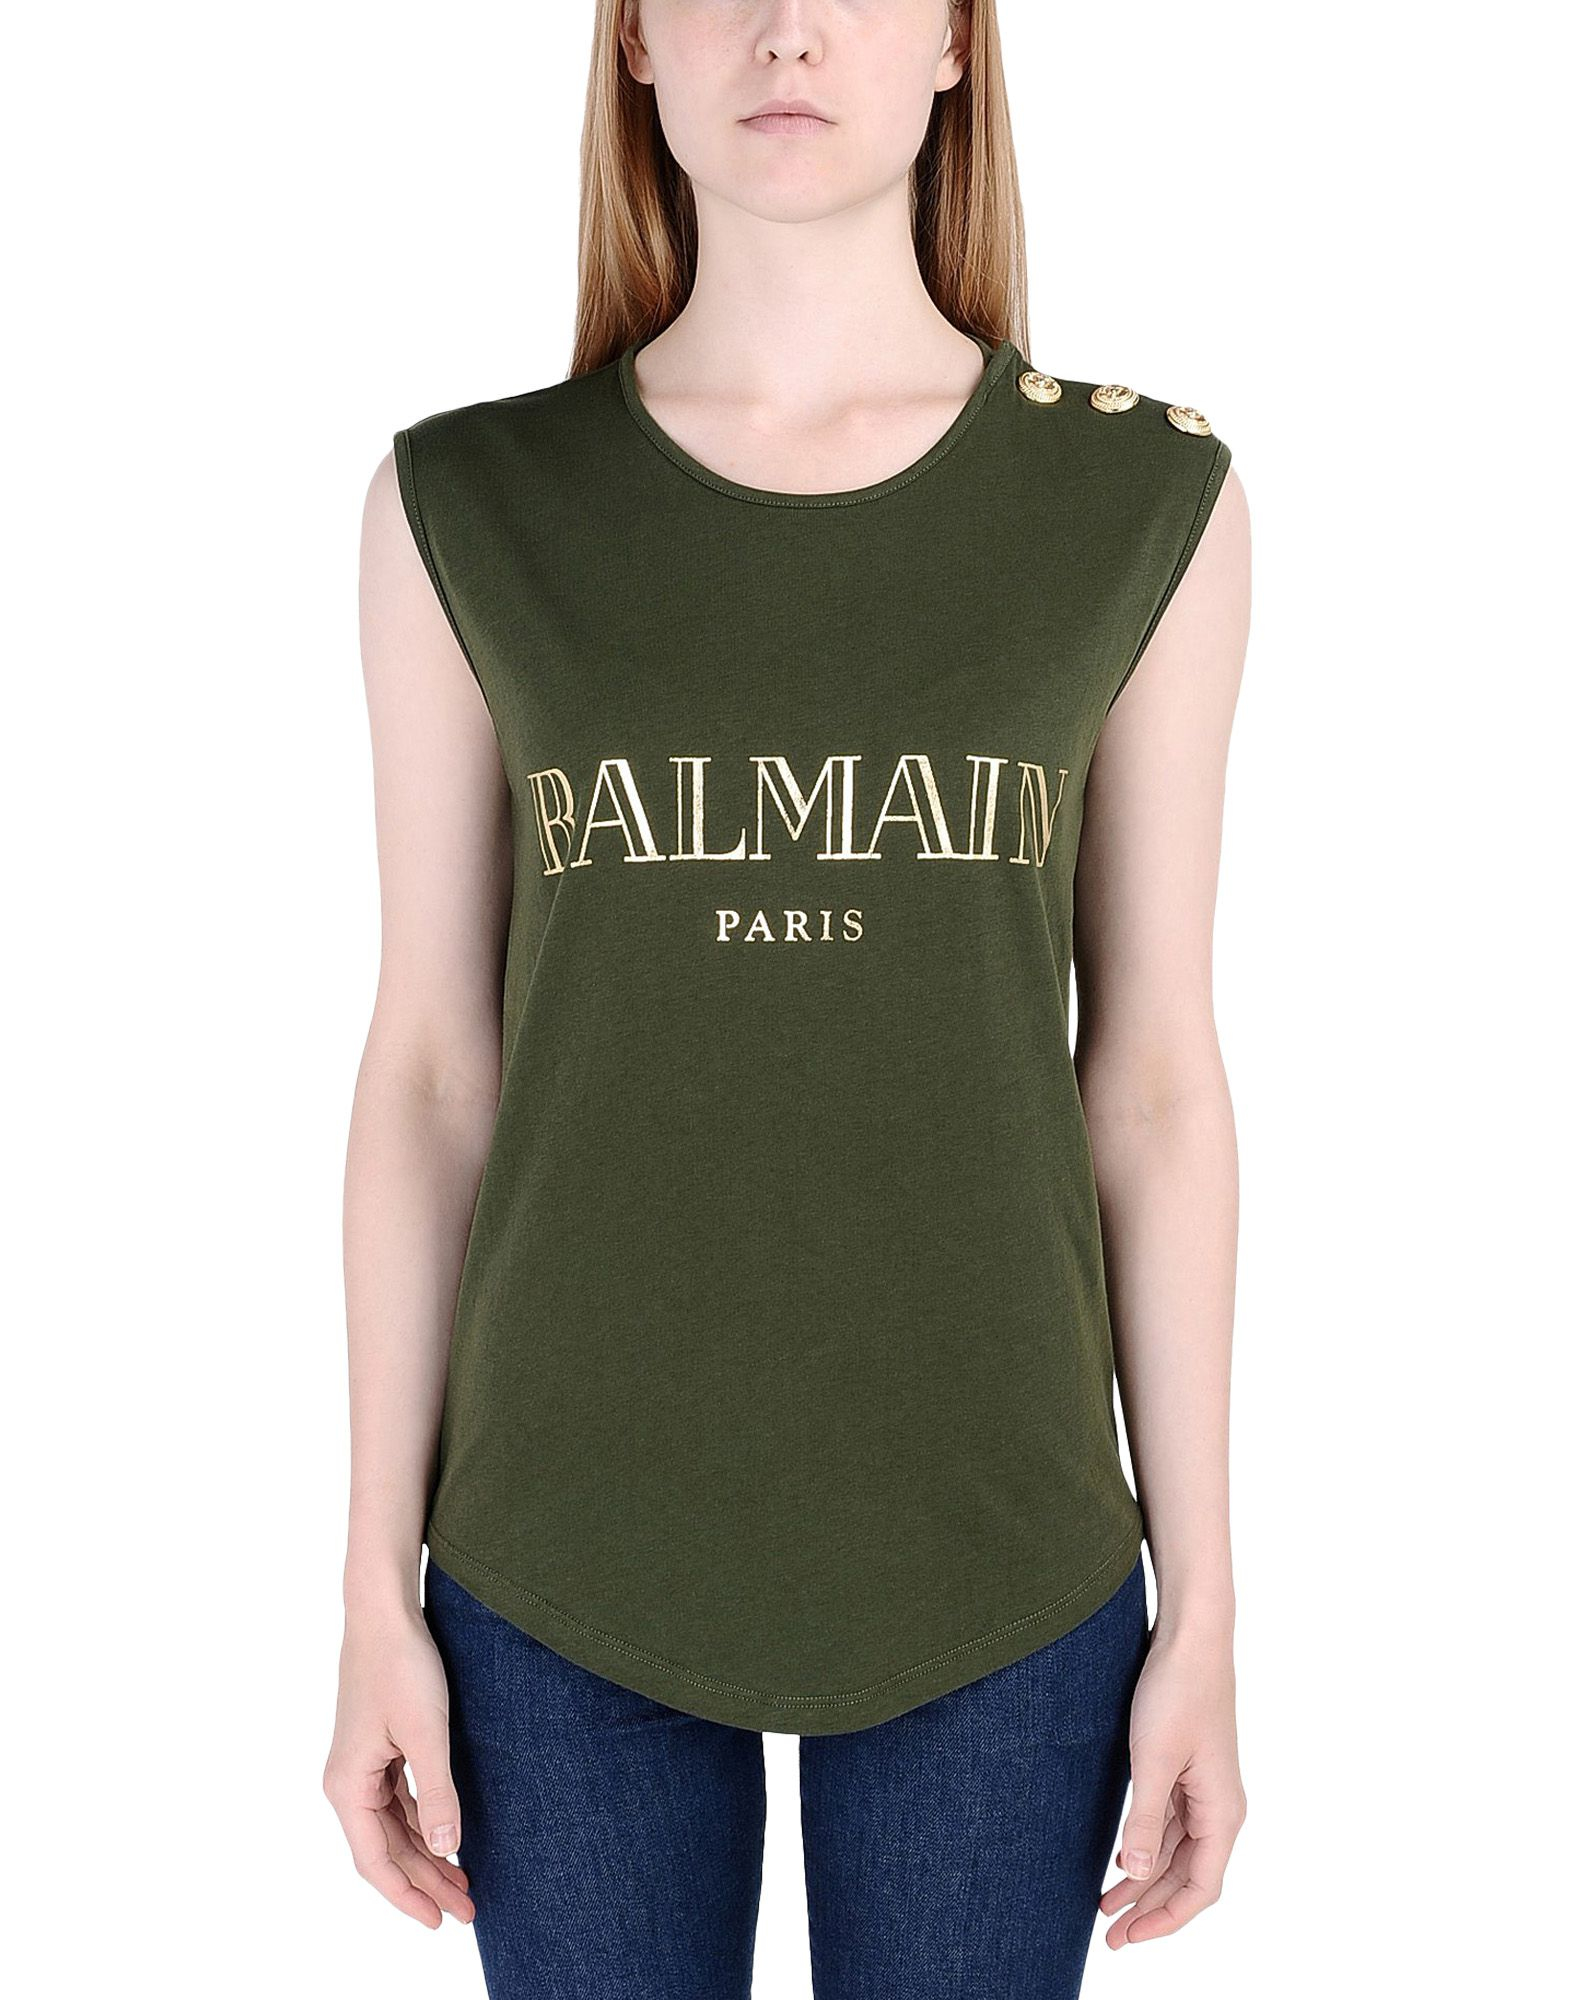 balmain sleeveless t shirt in green military green lyst. Black Bedroom Furniture Sets. Home Design Ideas